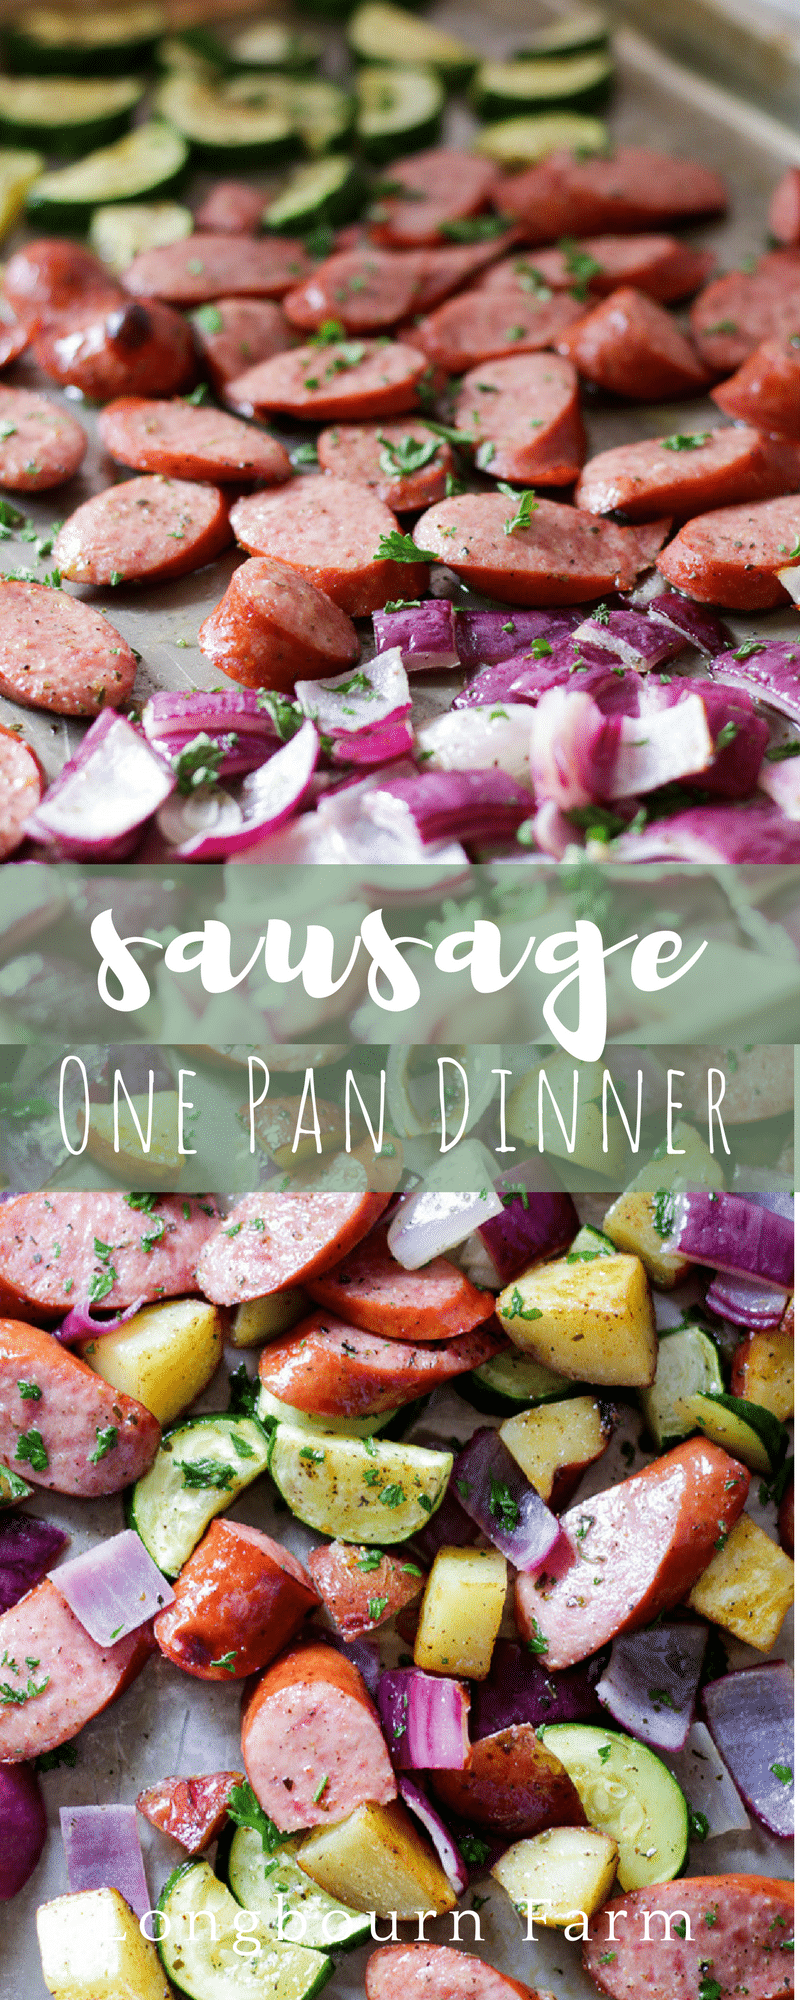 This Sausage Sheet Pan Dinner is packed with flavor, easy to put together, and fast. Perfect family-friendly meal for a busy day. via @longbournfarm